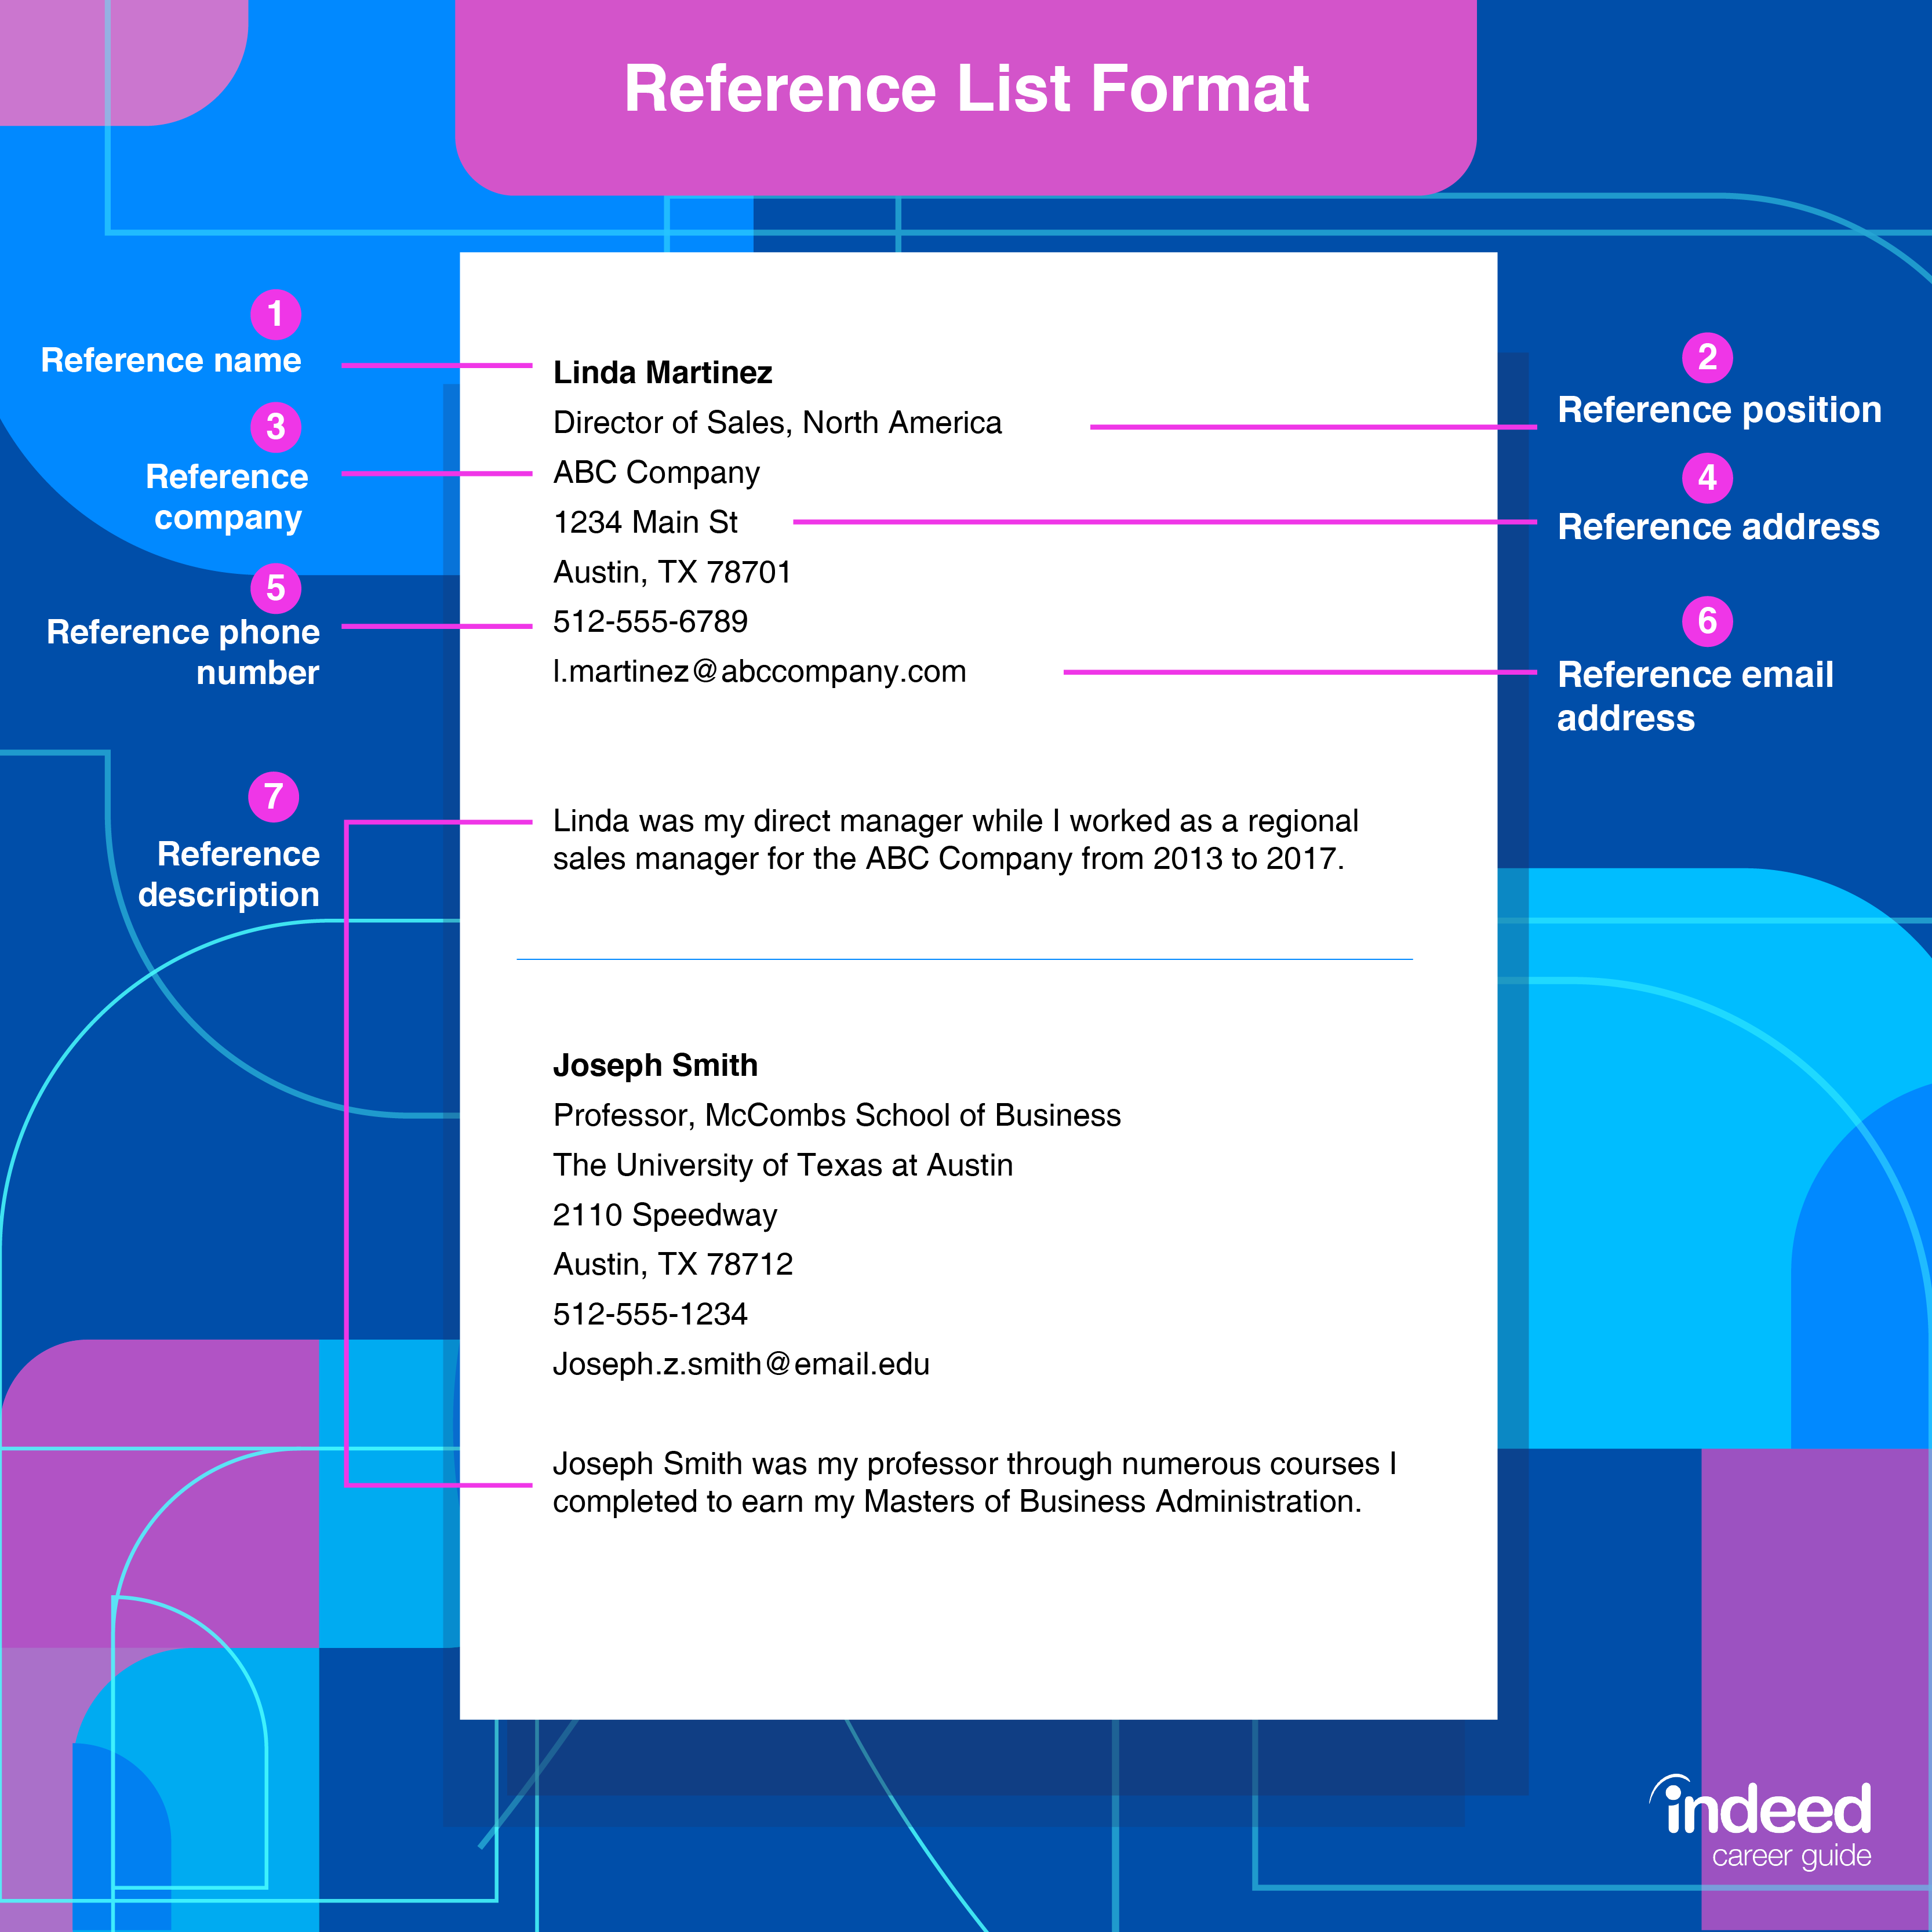 How To Write A Resume Reference List (With Examples